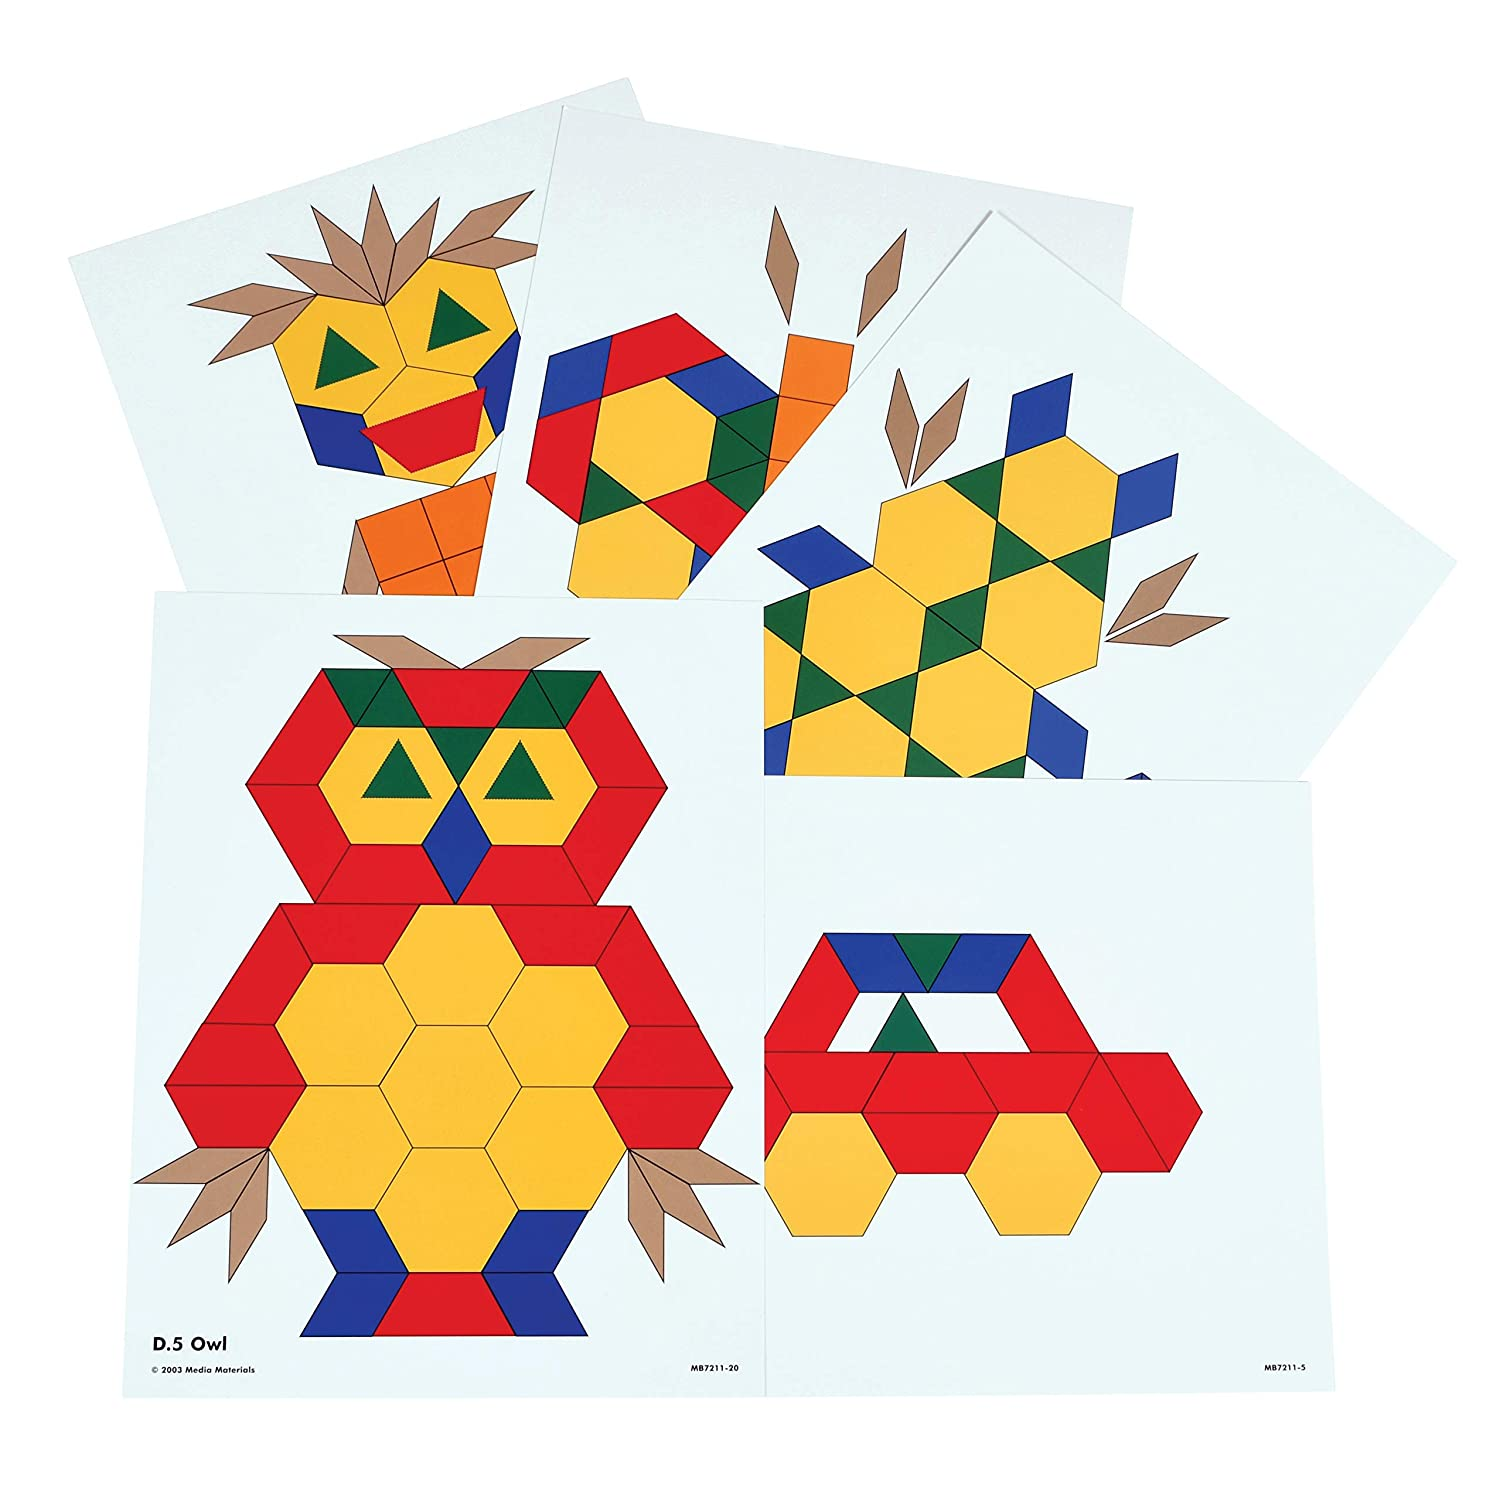 Learning Advantage Pattern Block Activity Cards - In Home Learning Activity for Early Math & Geometry - Set of 20 - Teach Creativity, Sequencing and Patterning